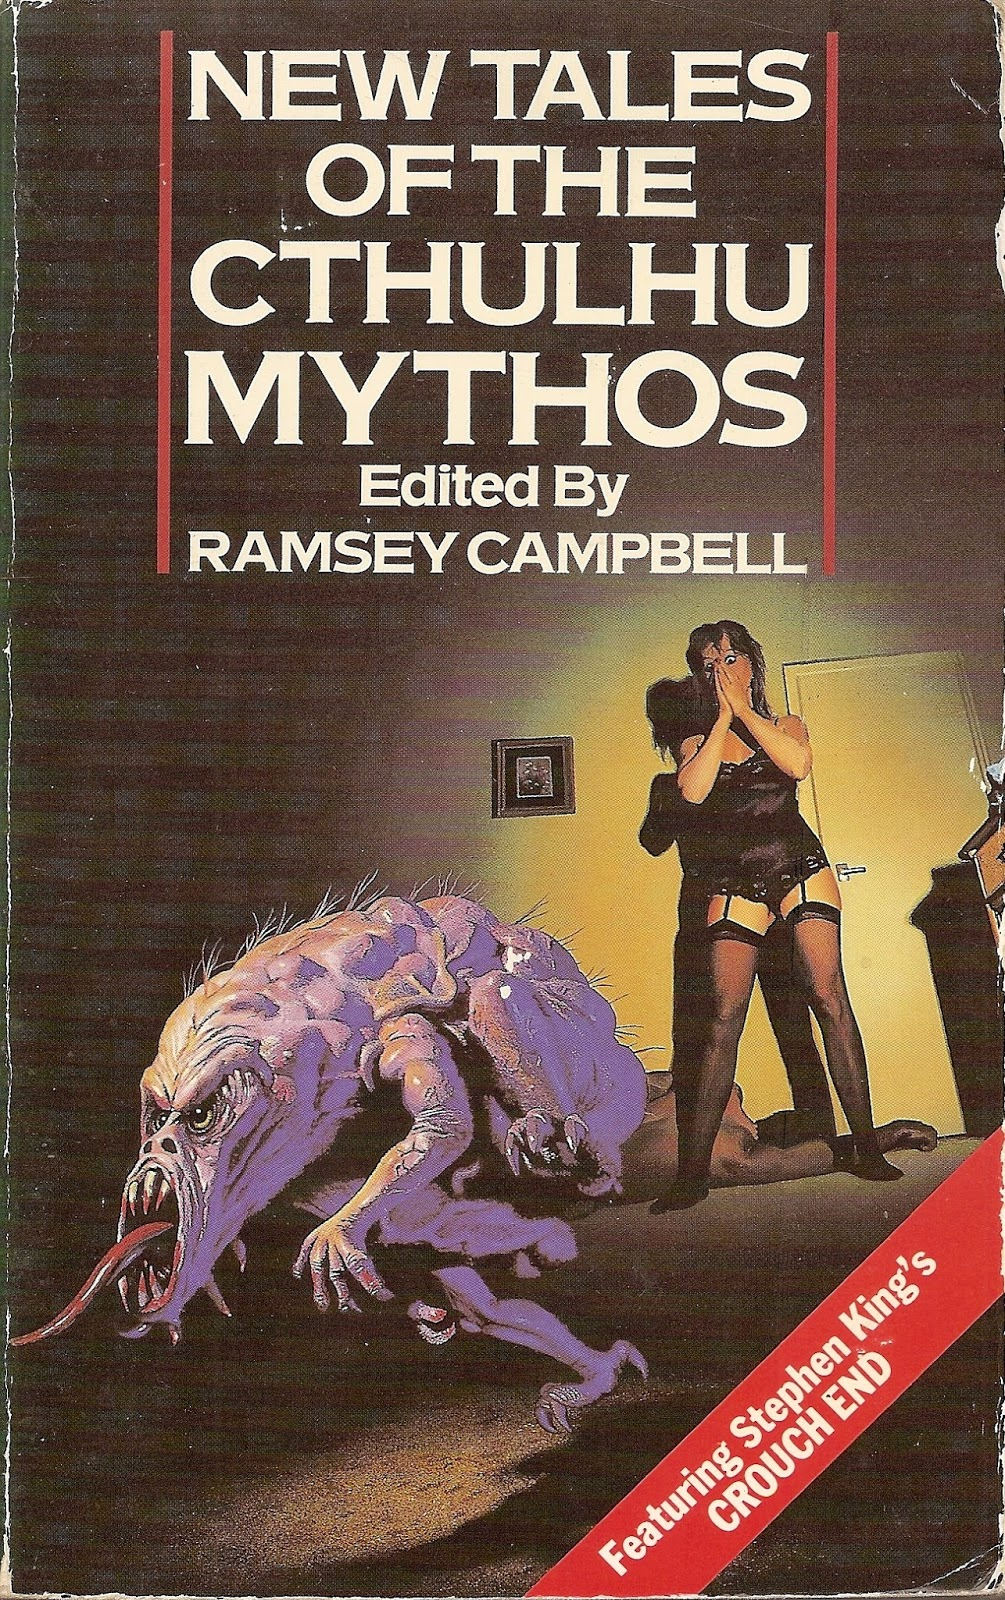 New Tales of the Cthulhu Mythos - ed. Ramsey Campbell